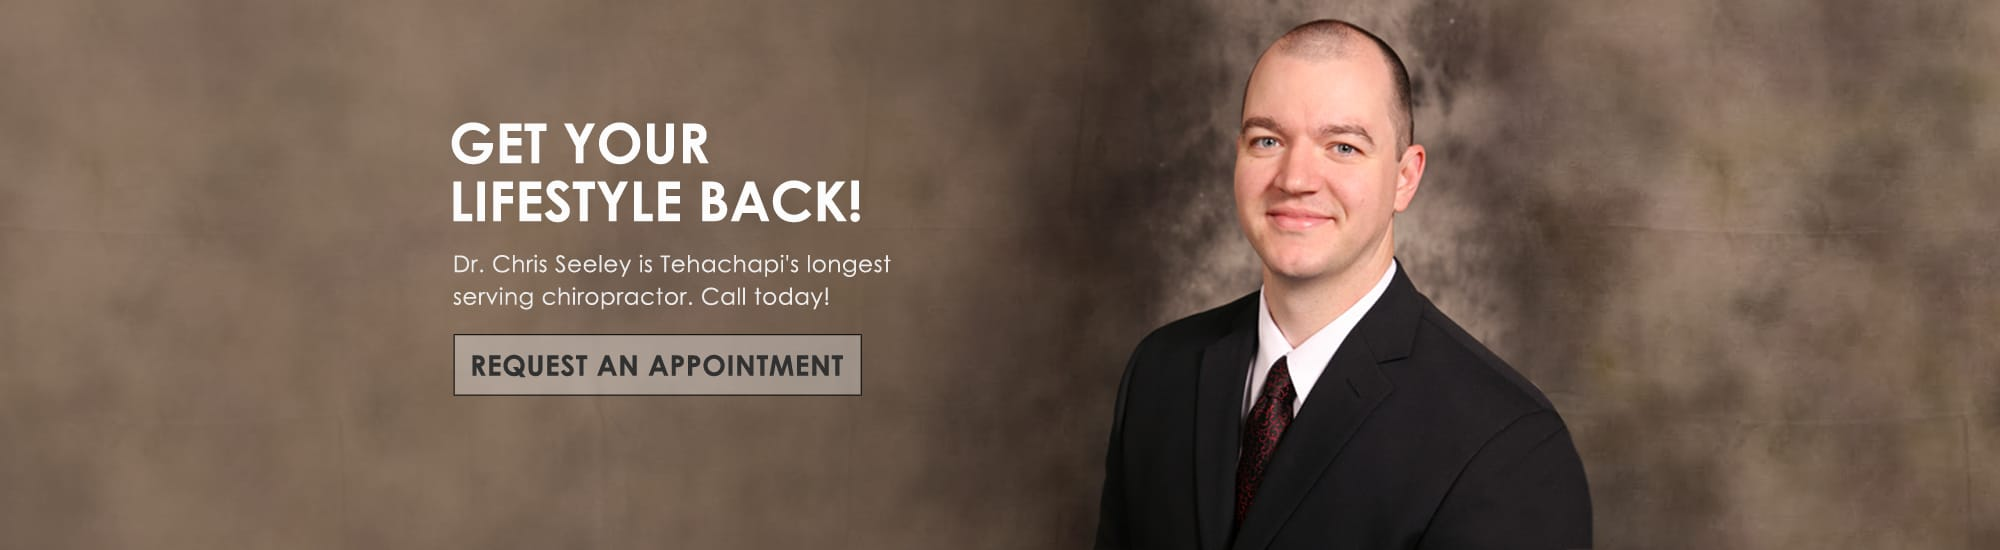 Chiropractor Tehachapi CA Chris Seeley request appointment